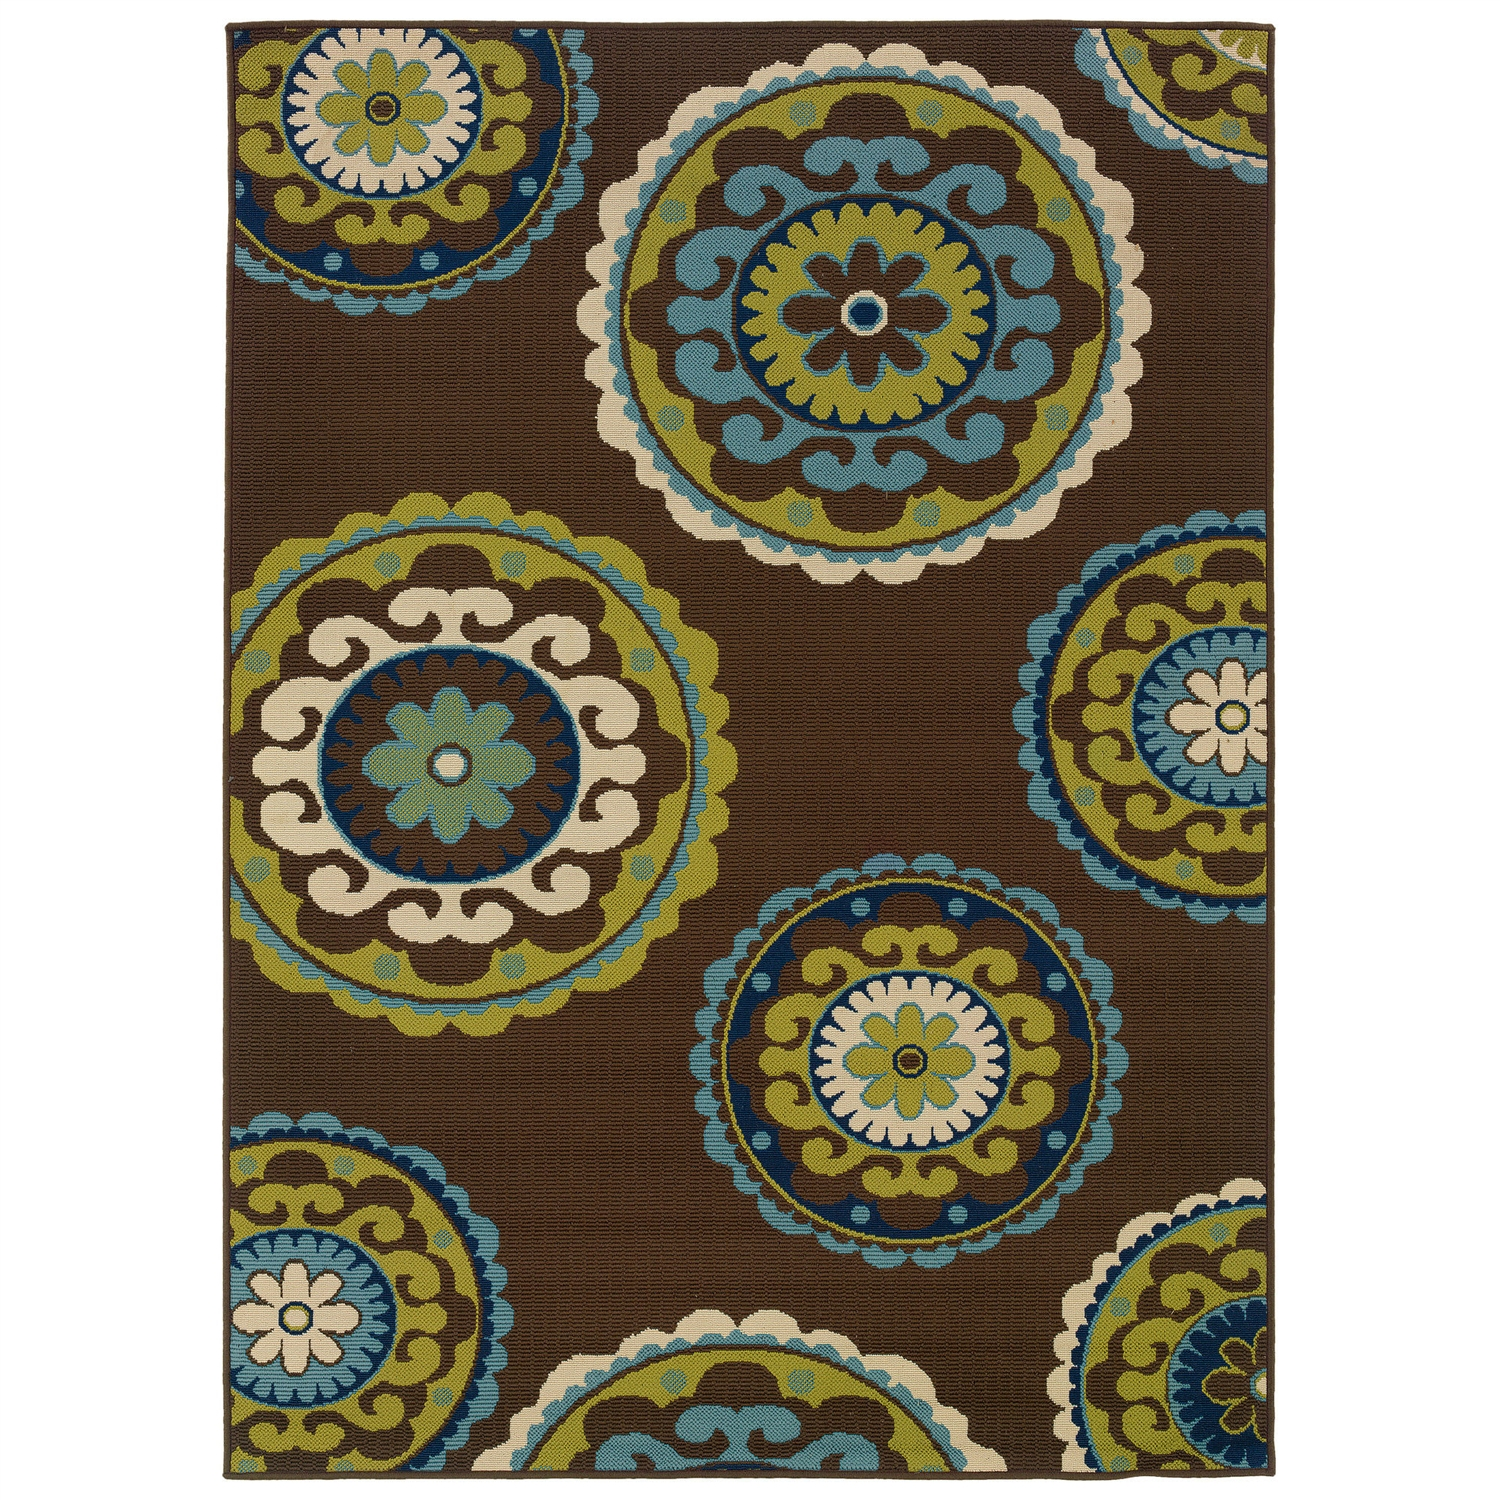 teensarea rug page green with rugs gitarshool teal inspirations ruglime picture and for lime kidslime birdslime area